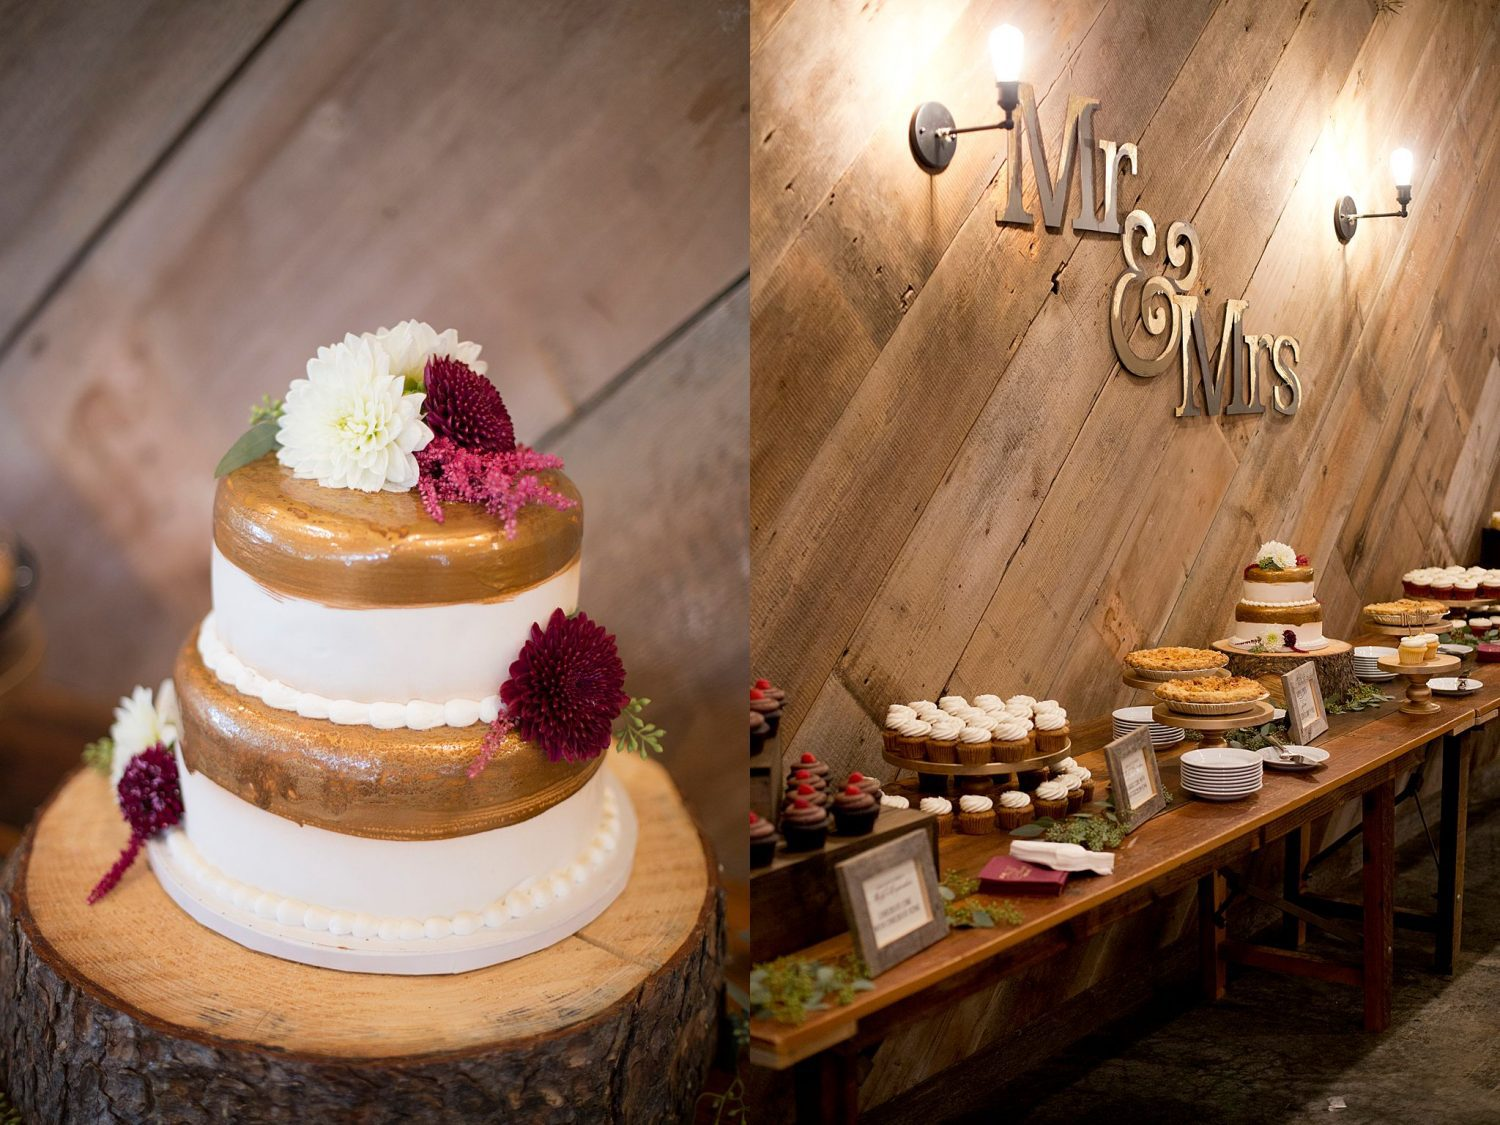 White wedding cake with gold icing accents and burgundy flowers. A wider shot of the dessert table including apple pies and cupcakes.